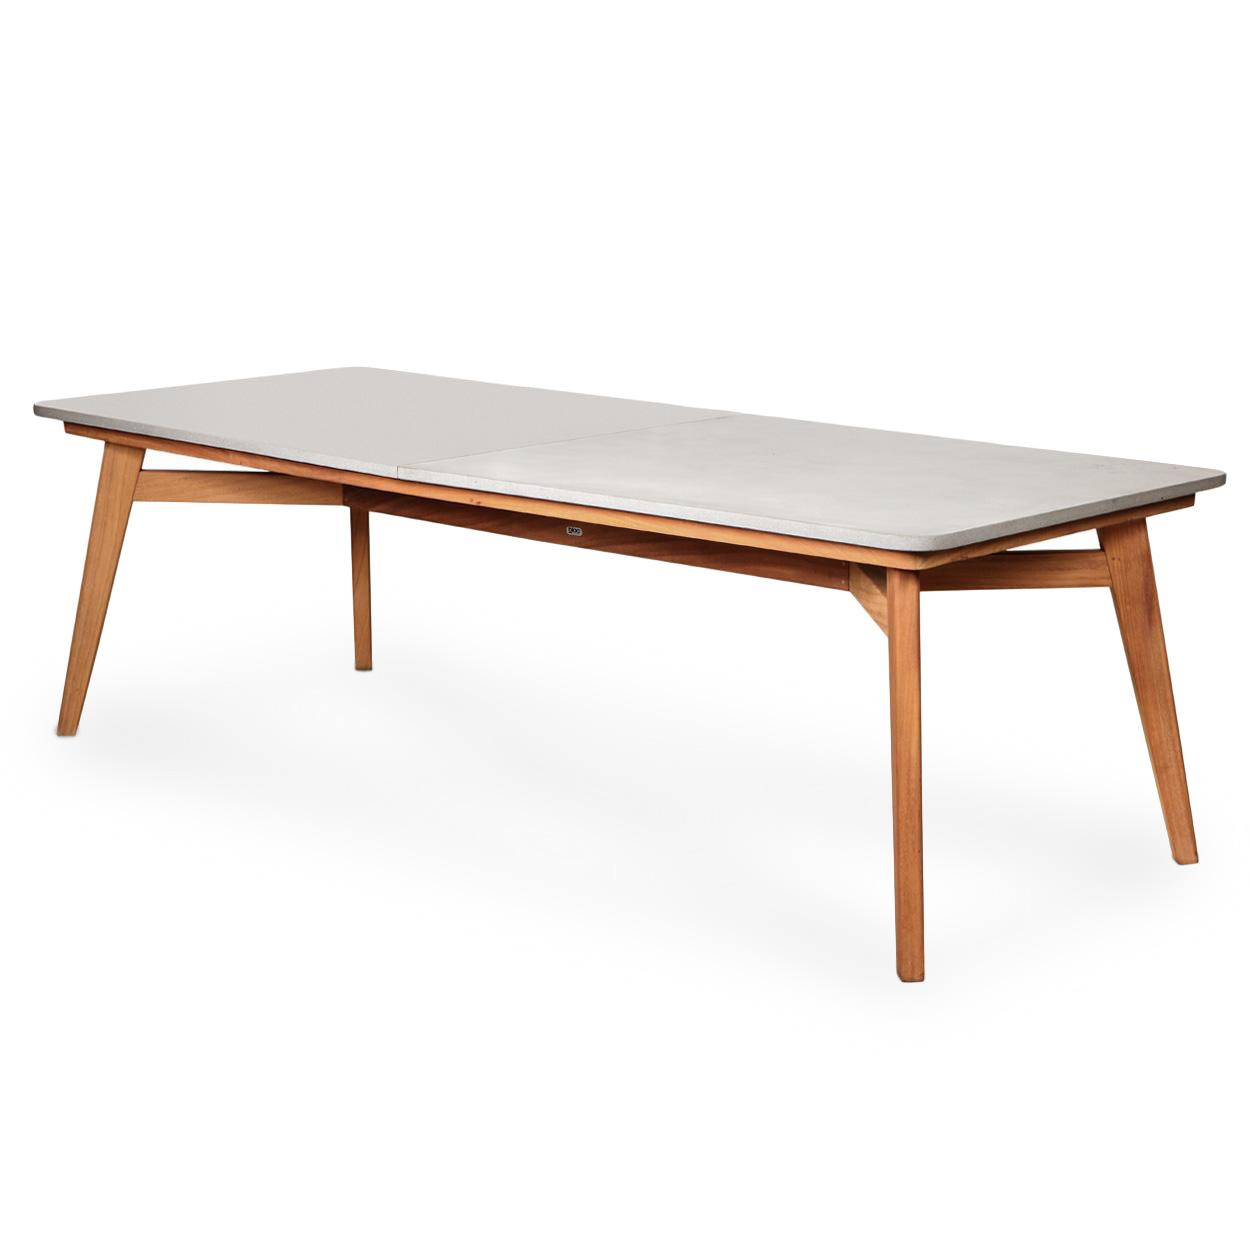 savanna-concrete-top-din-table-web